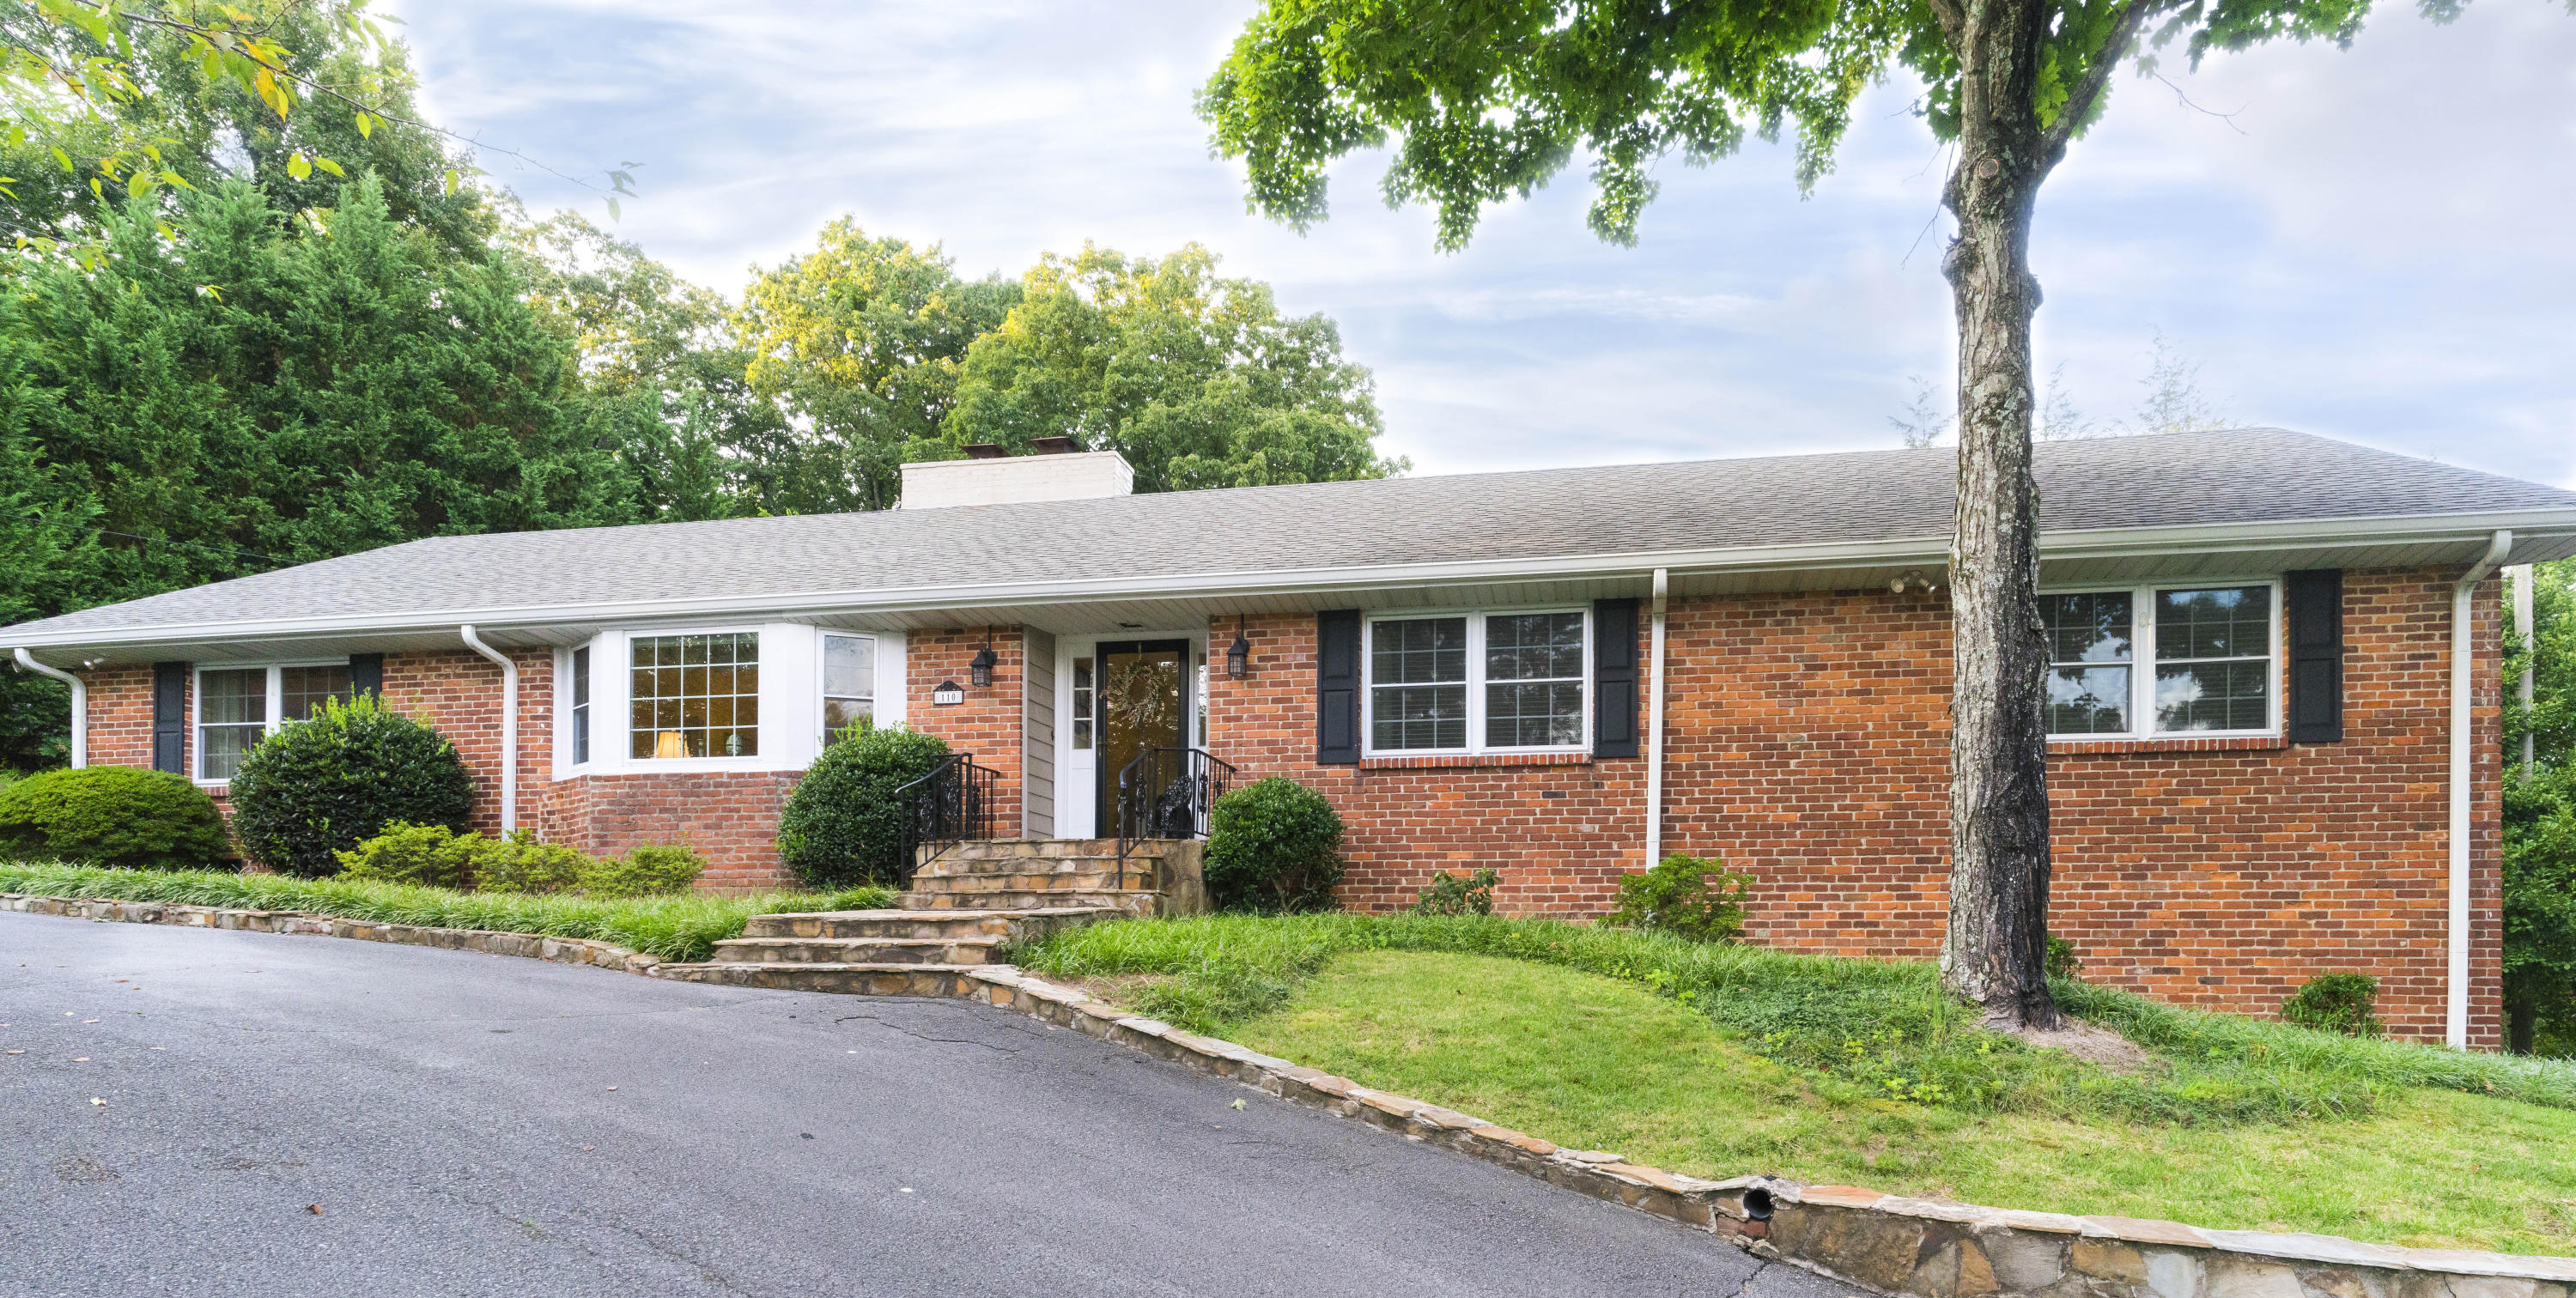 110 Whiteside St, Lookout Mountain, TN 37350